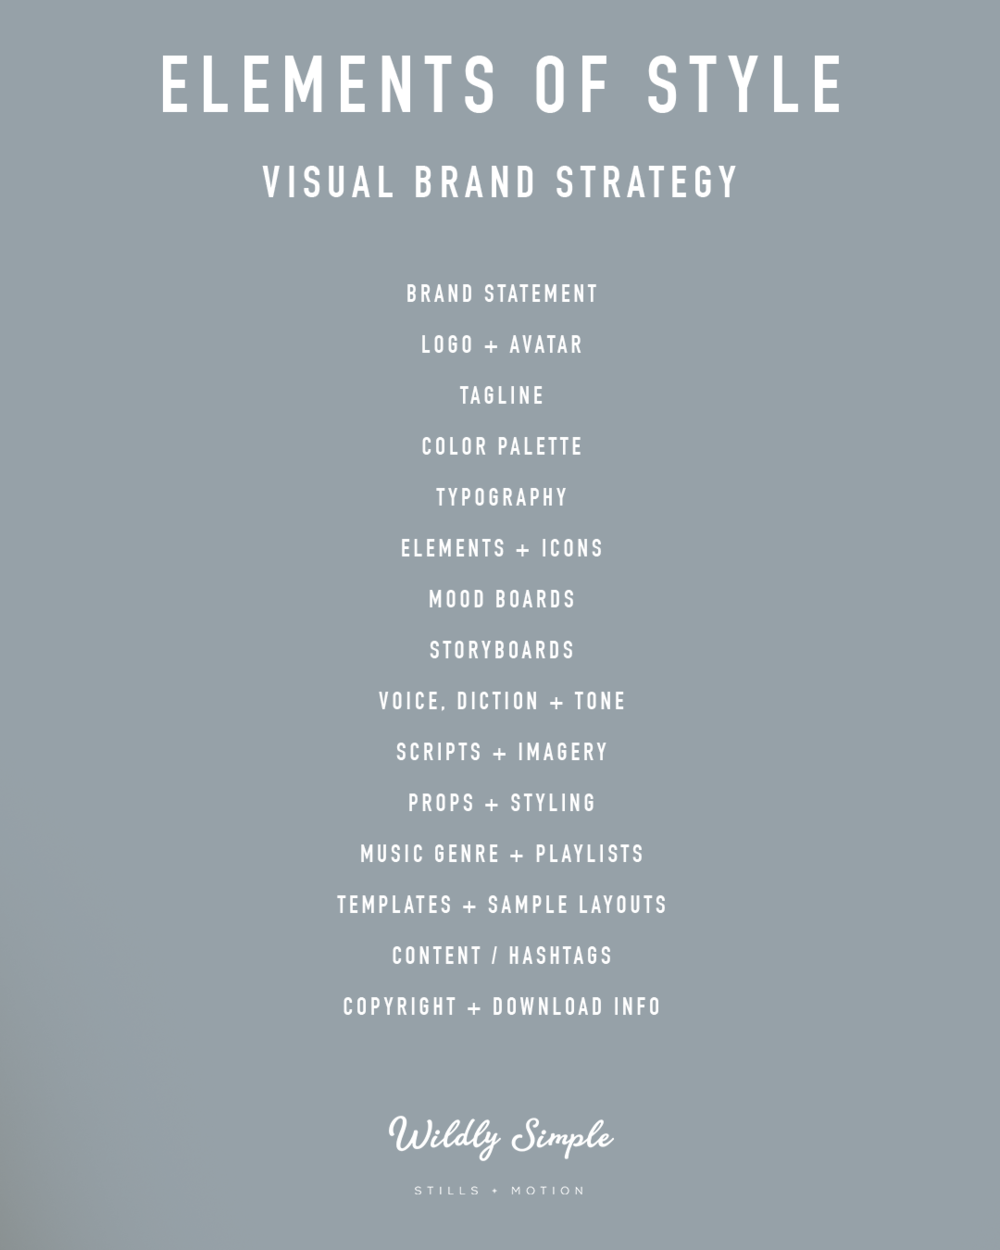 Brand Design Elements Of Style Elements Of Style Style Guide Design Branding Design